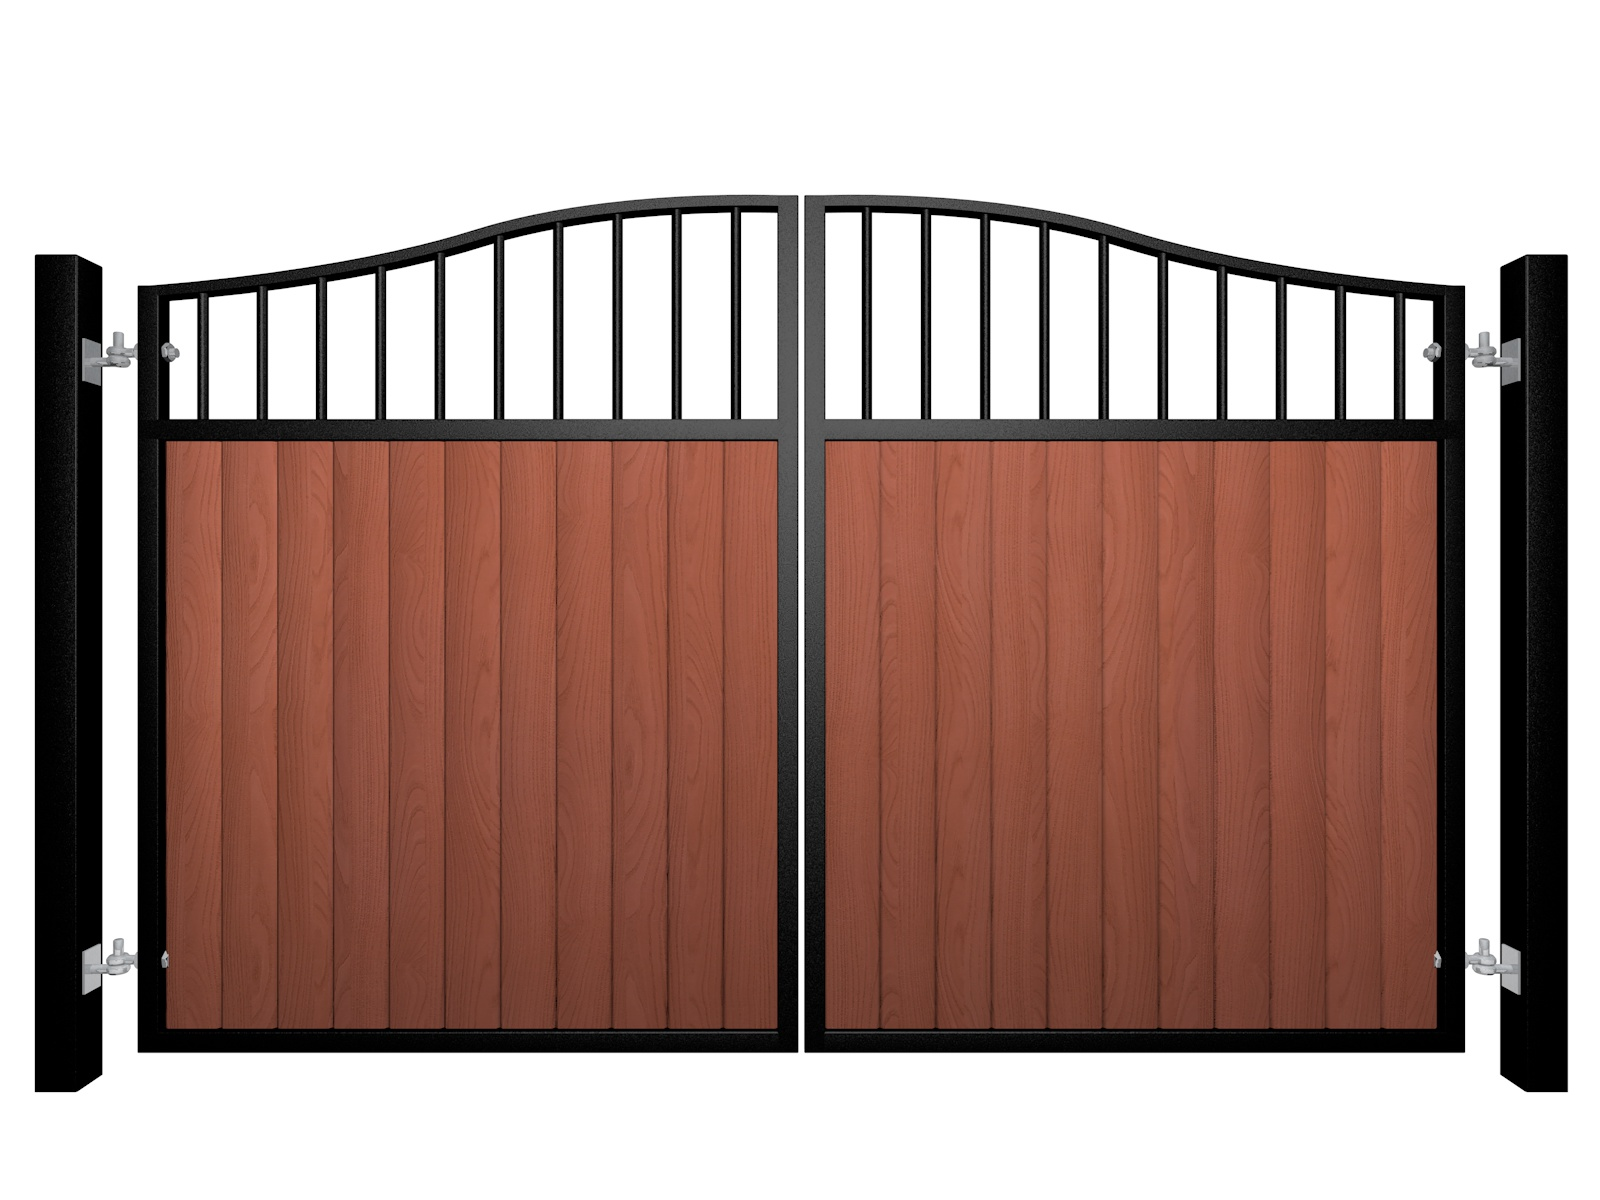 metal framed wood fill open bars bell top automated gate